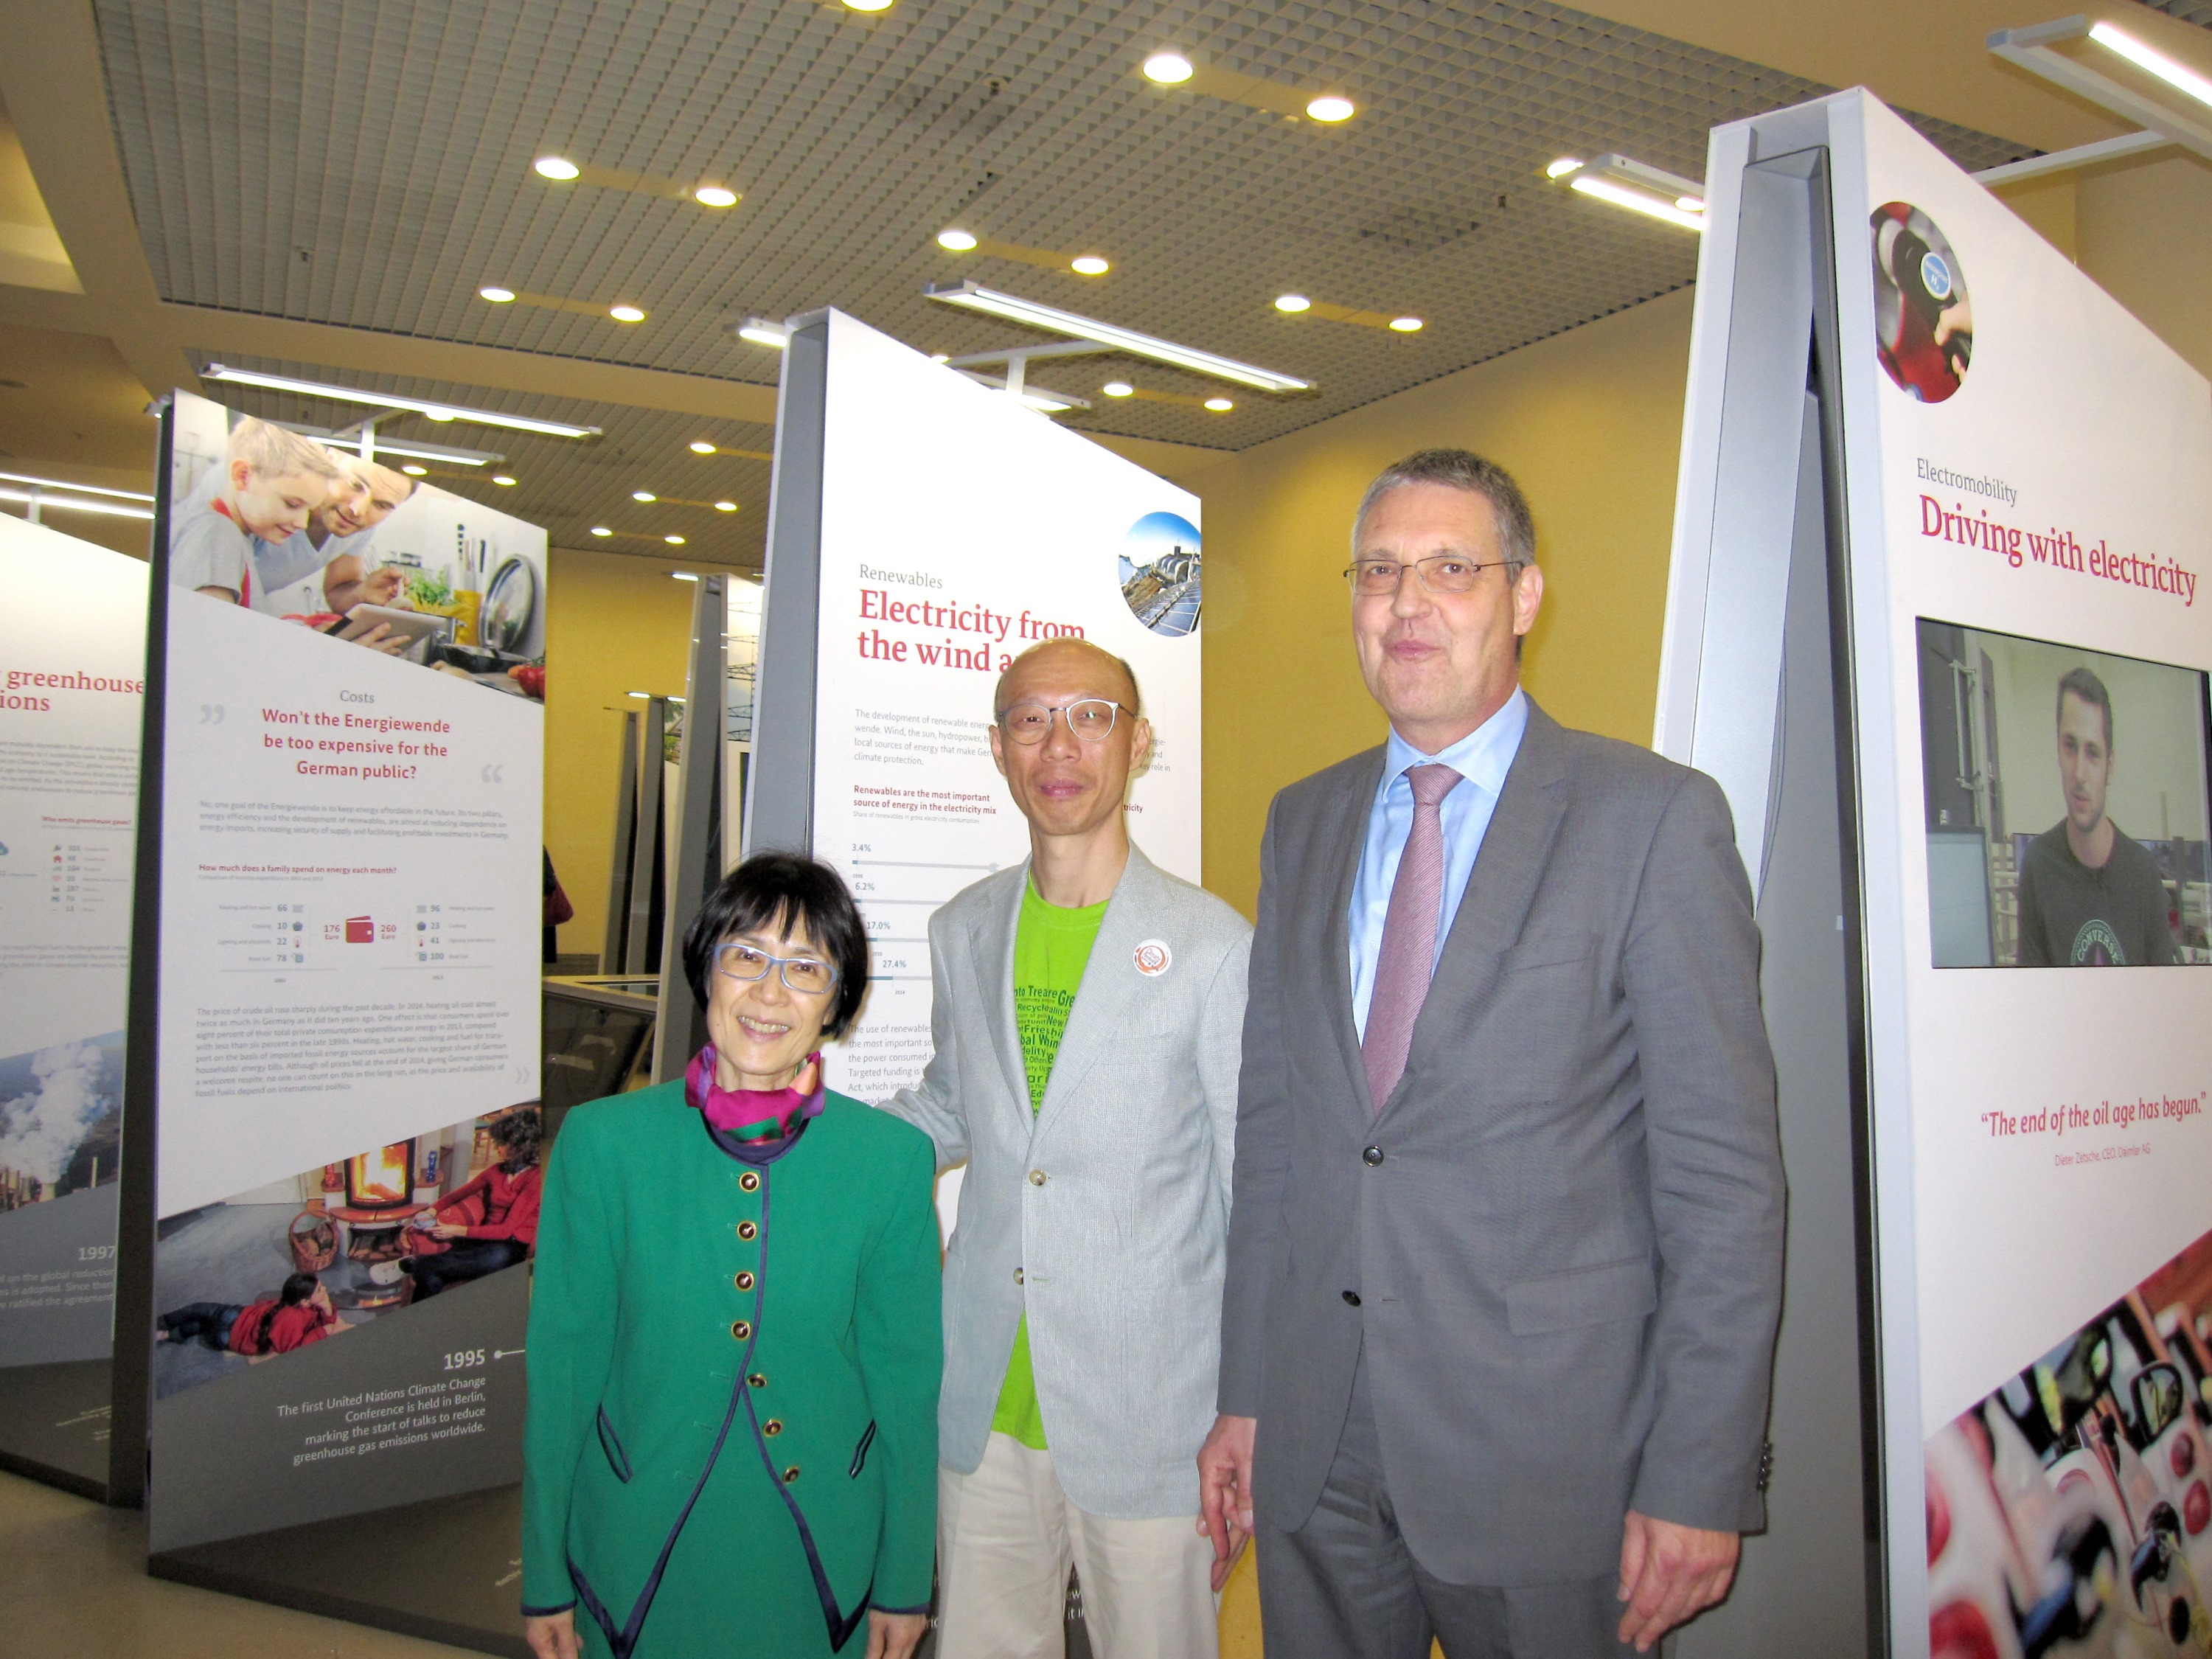 (From left) Prof. Fanny Cheung, Pro-Vice-Chancellor of CUHK, Mr. Wong Kam-sing, Secretary for the Environment of the HKSAR Government and Dr. Markus Ederer, State Secretary of the Federal Foreign Office, Germany officiate at the opening ceremony.